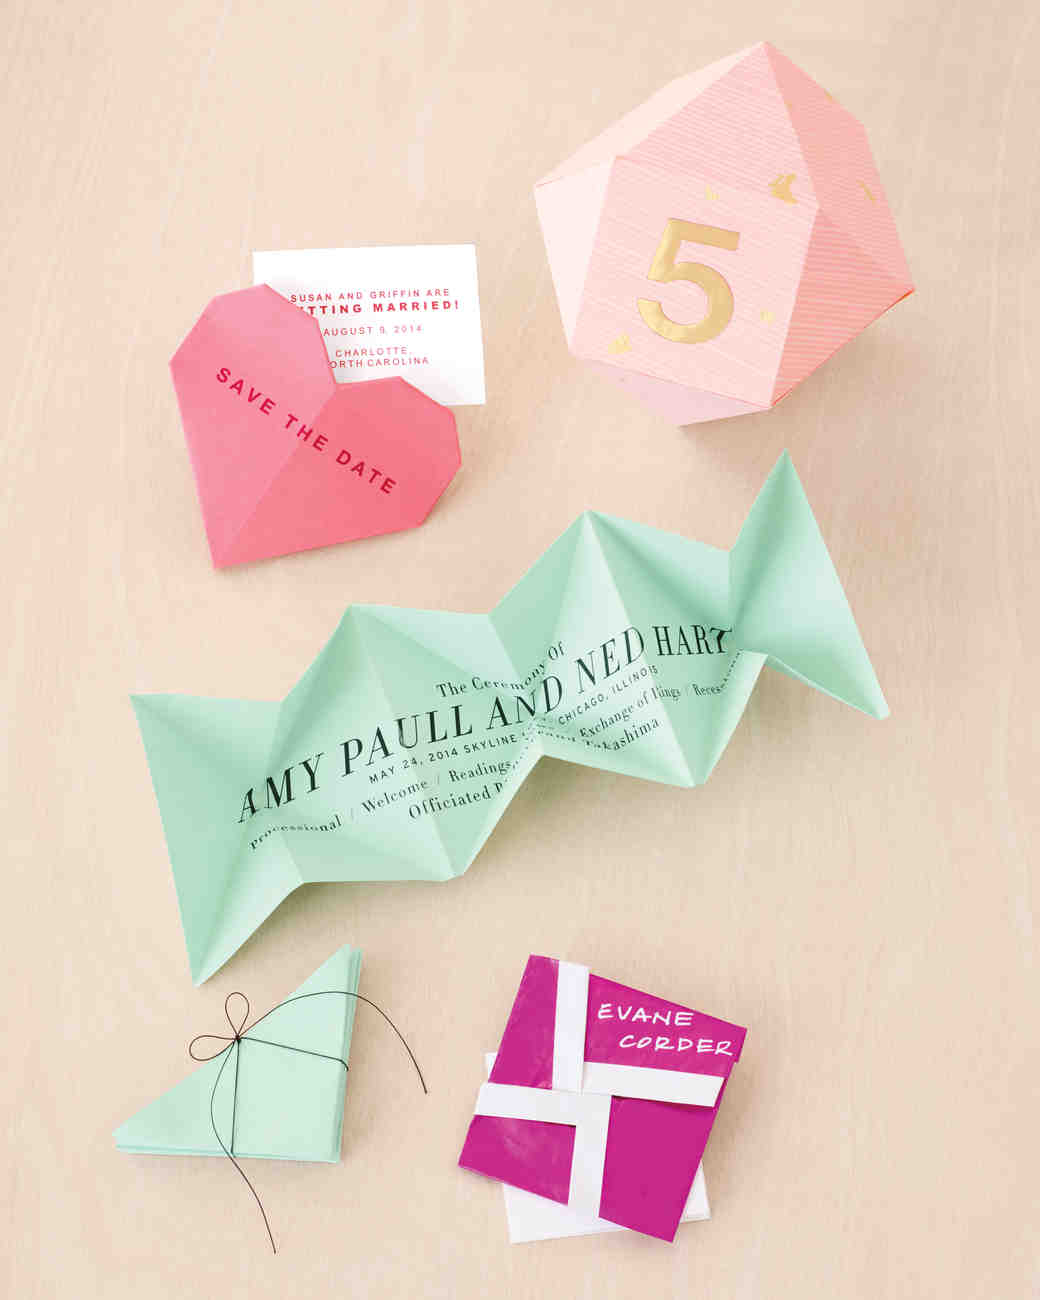 10 Diy Origami Ideas For Your Wedding Martha Stewart Weddings